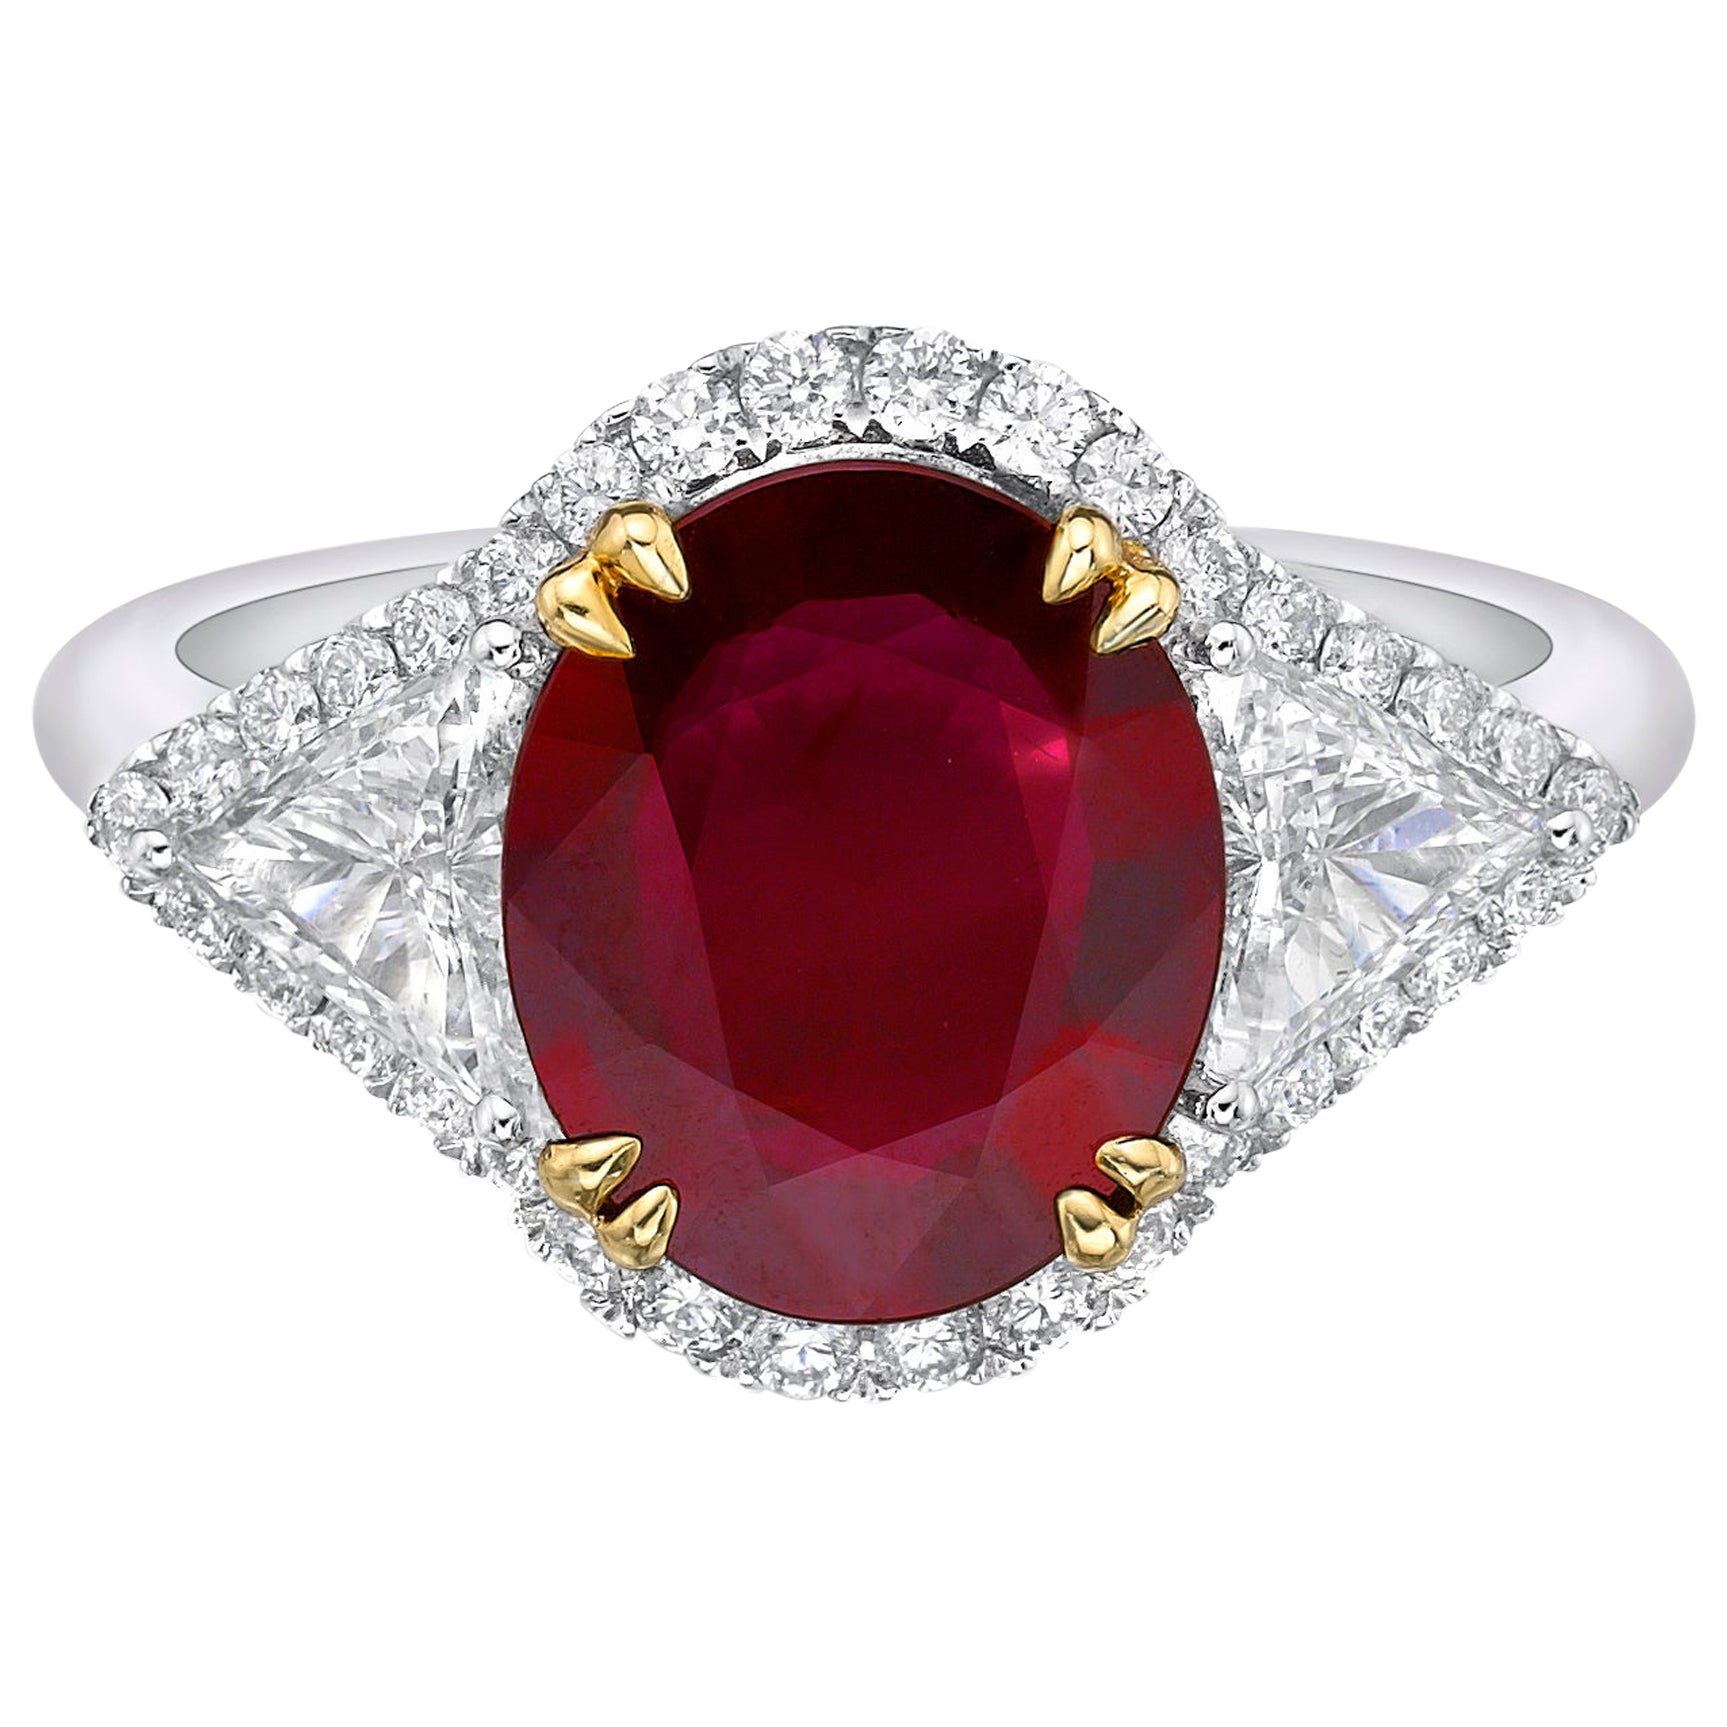 2.66 Carat Vivid Red Ruby GRS Certified Unheated Diamond Ring Oval Cut